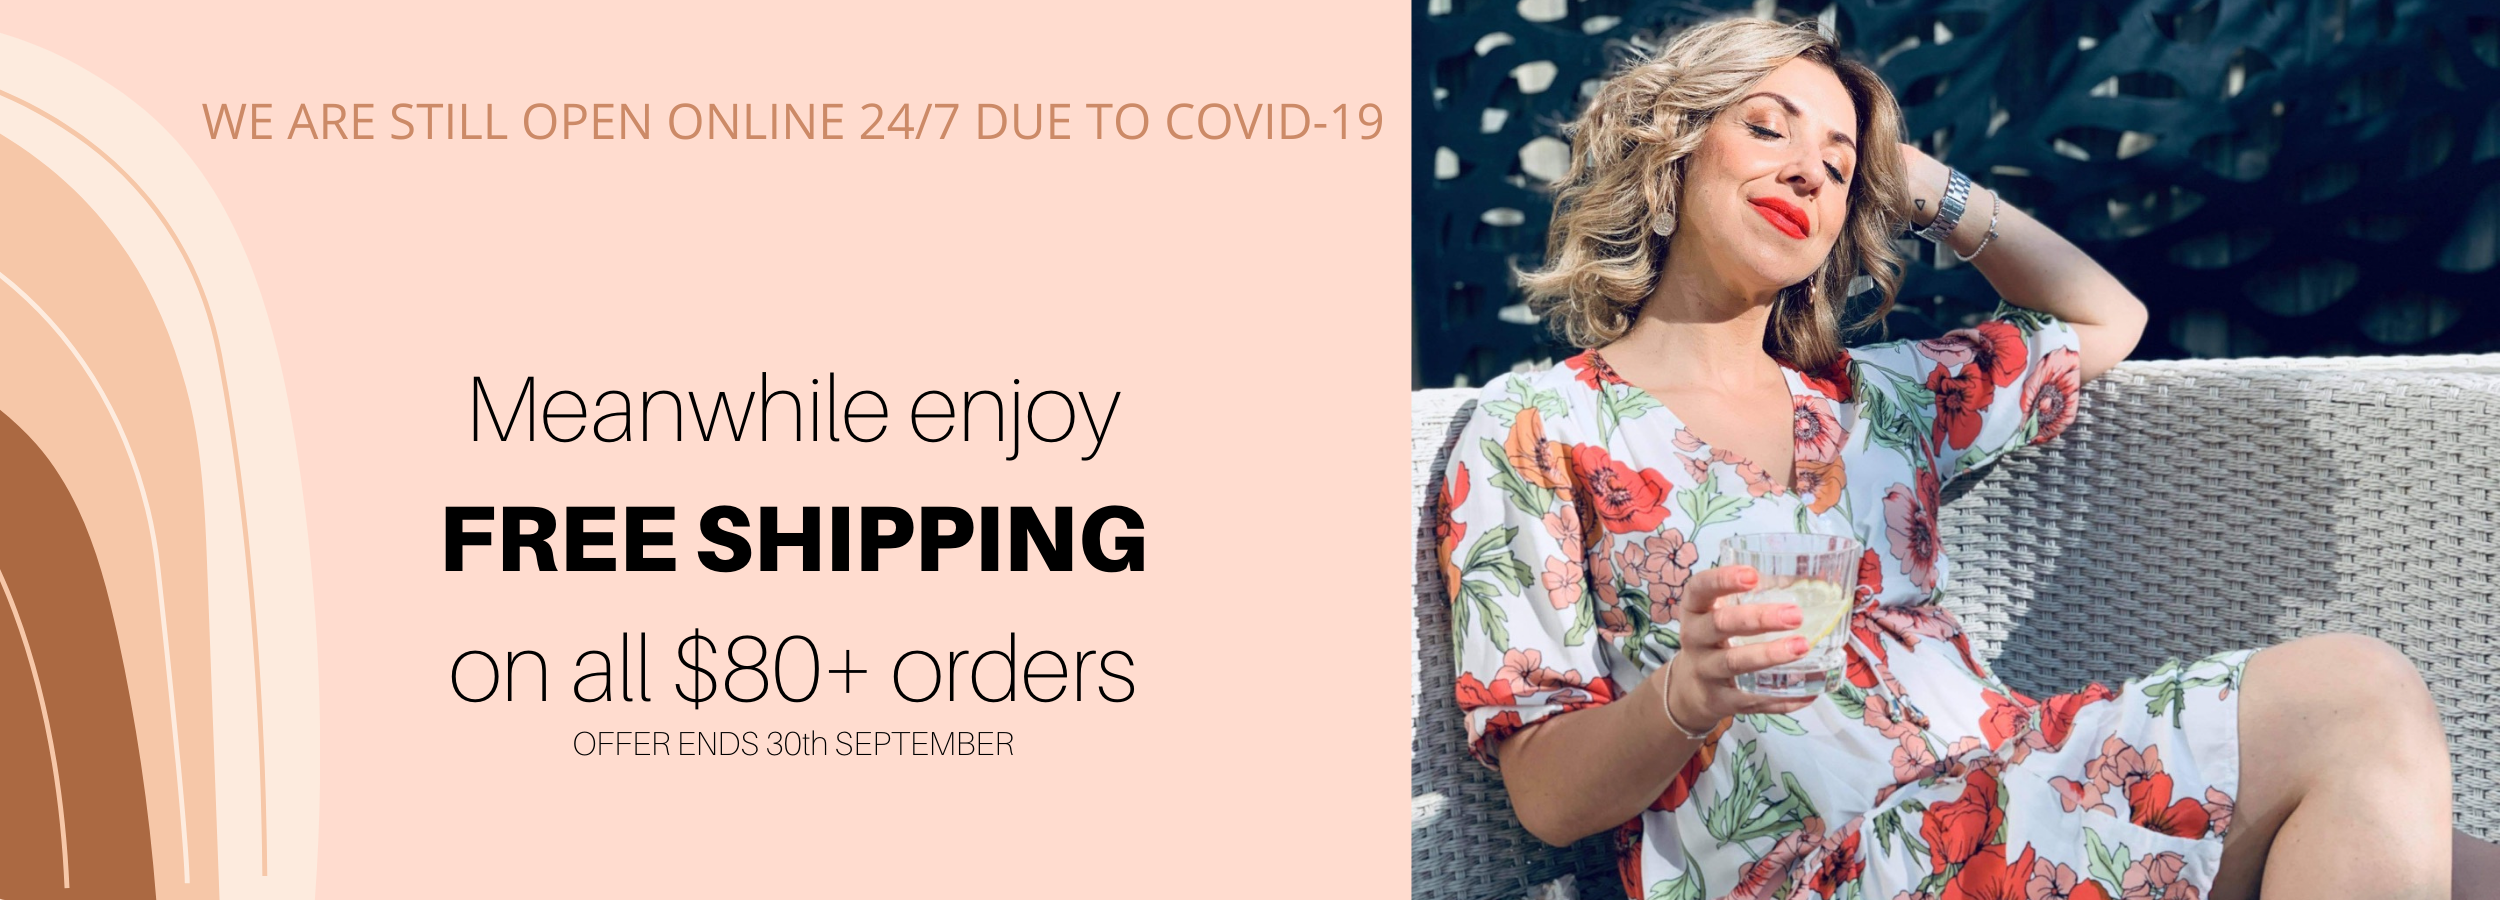 we-are-still-open-online-24-7-due-to-covid-19.-meanwhile-enjoy-free-shipping-on-all-80-orders.-2.png